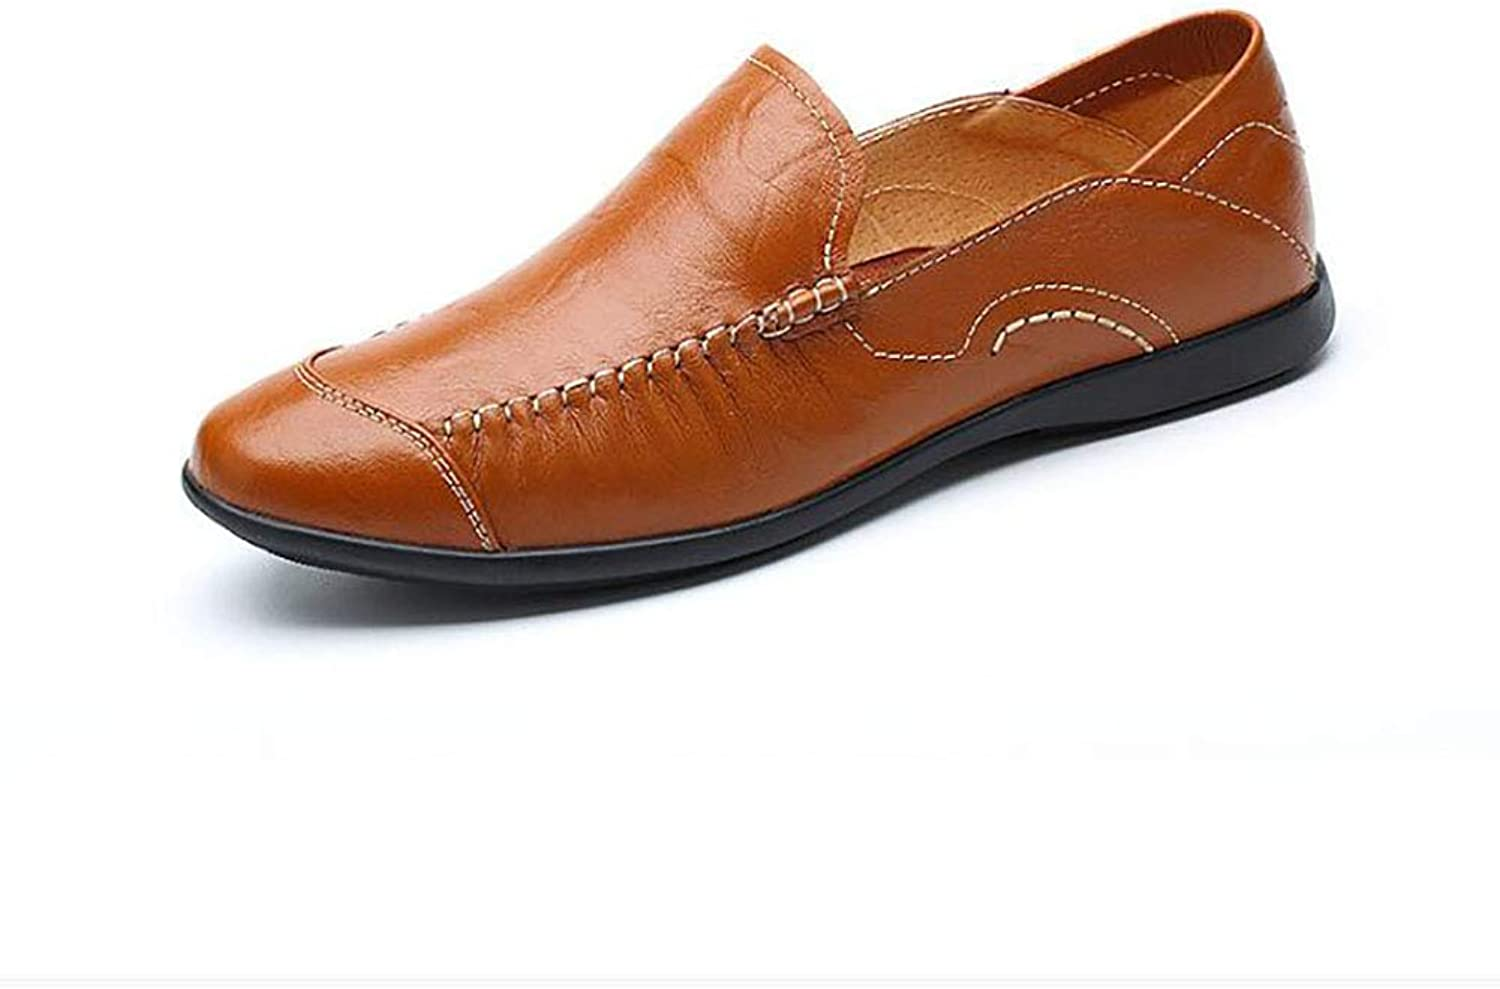 Jiedi Men's shoes Leather Spring Fall Comfort Driving shoes Loafers & Slip-ONS Leather shoes Comfort Loafers